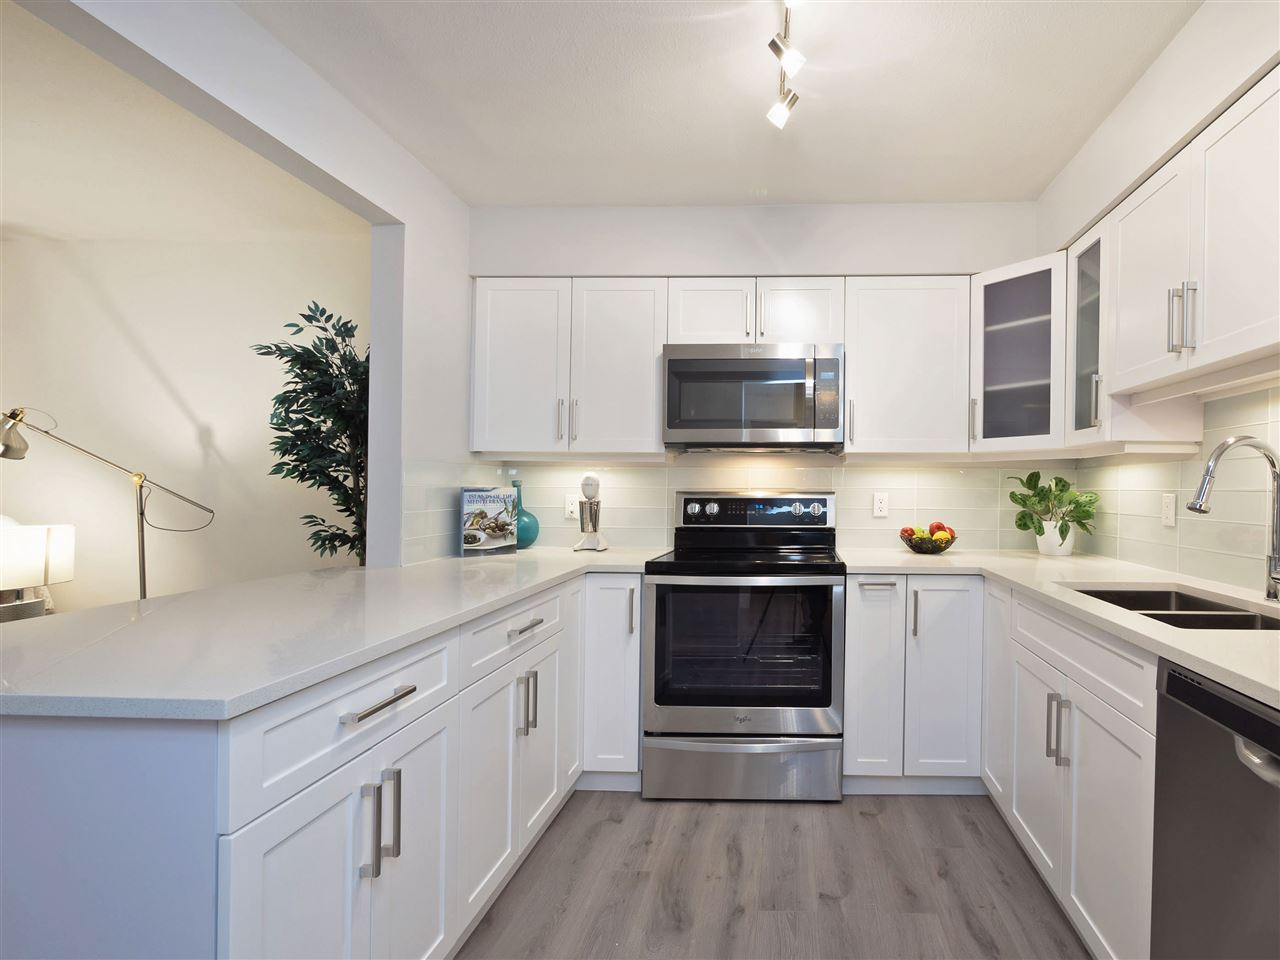 Condo Apartment at 211 1148 WESTWOOD STREET, Unit 211, Coquitlam, British Columbia. Image 2